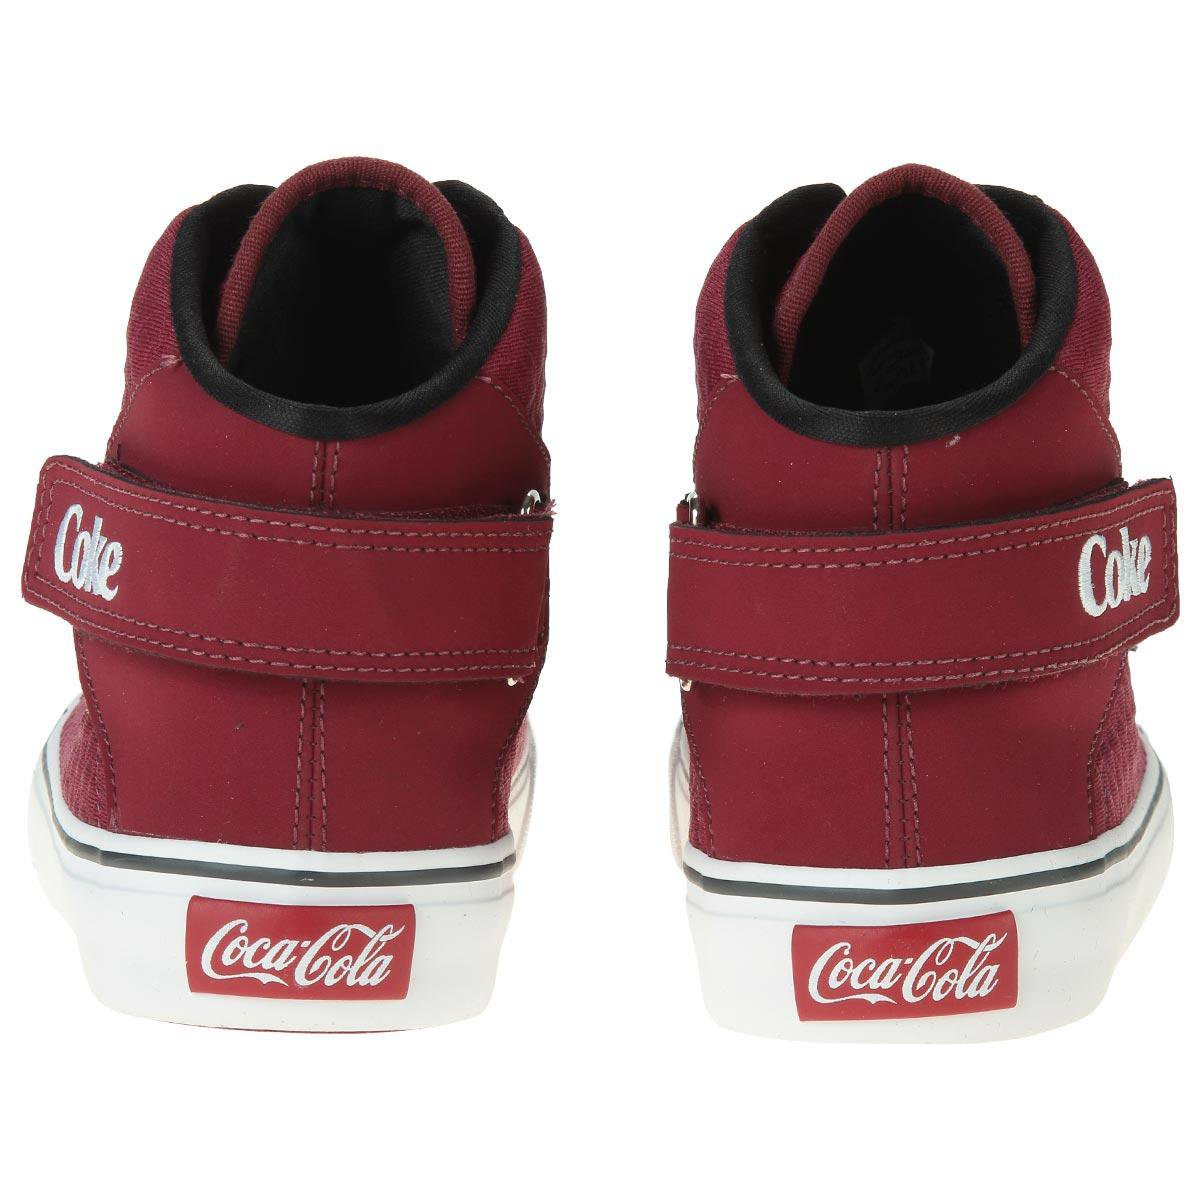 Coca Cola Coca Tênis Bordô Shoes Tênis Bordô Shoes Cola dXqwqE4